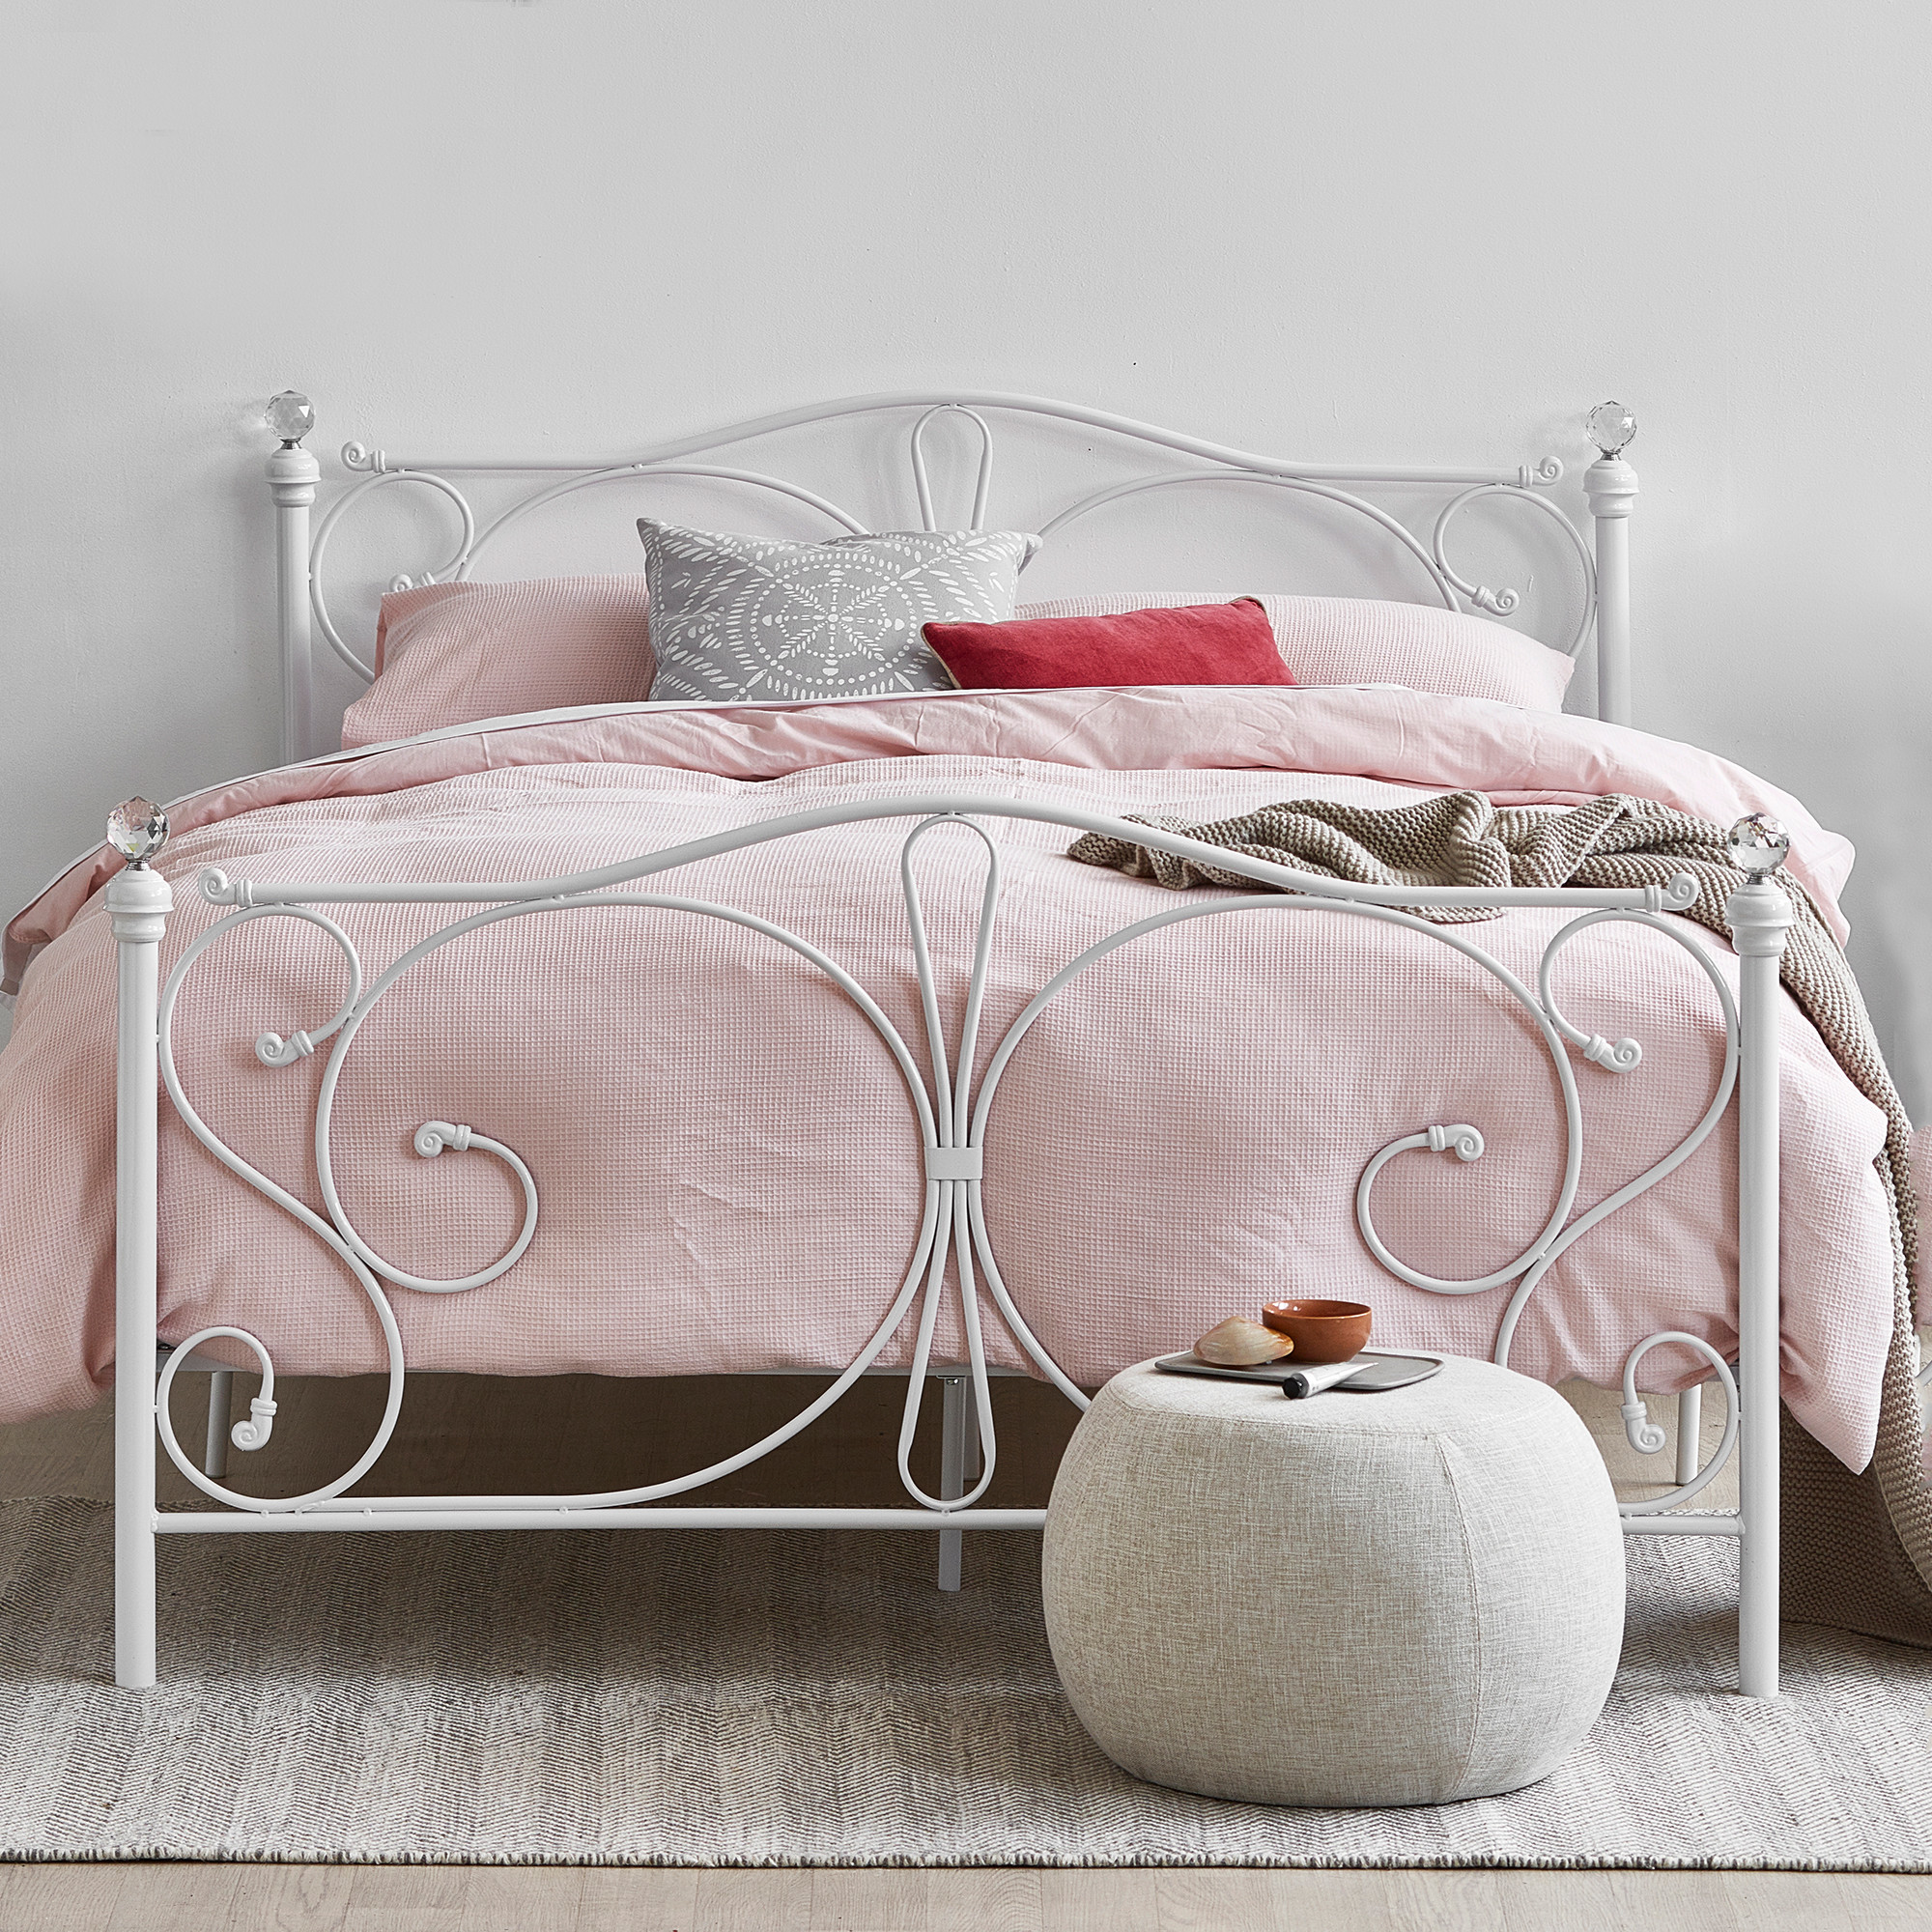 new classical christina white metal bed frame - White Metal Bed Frame